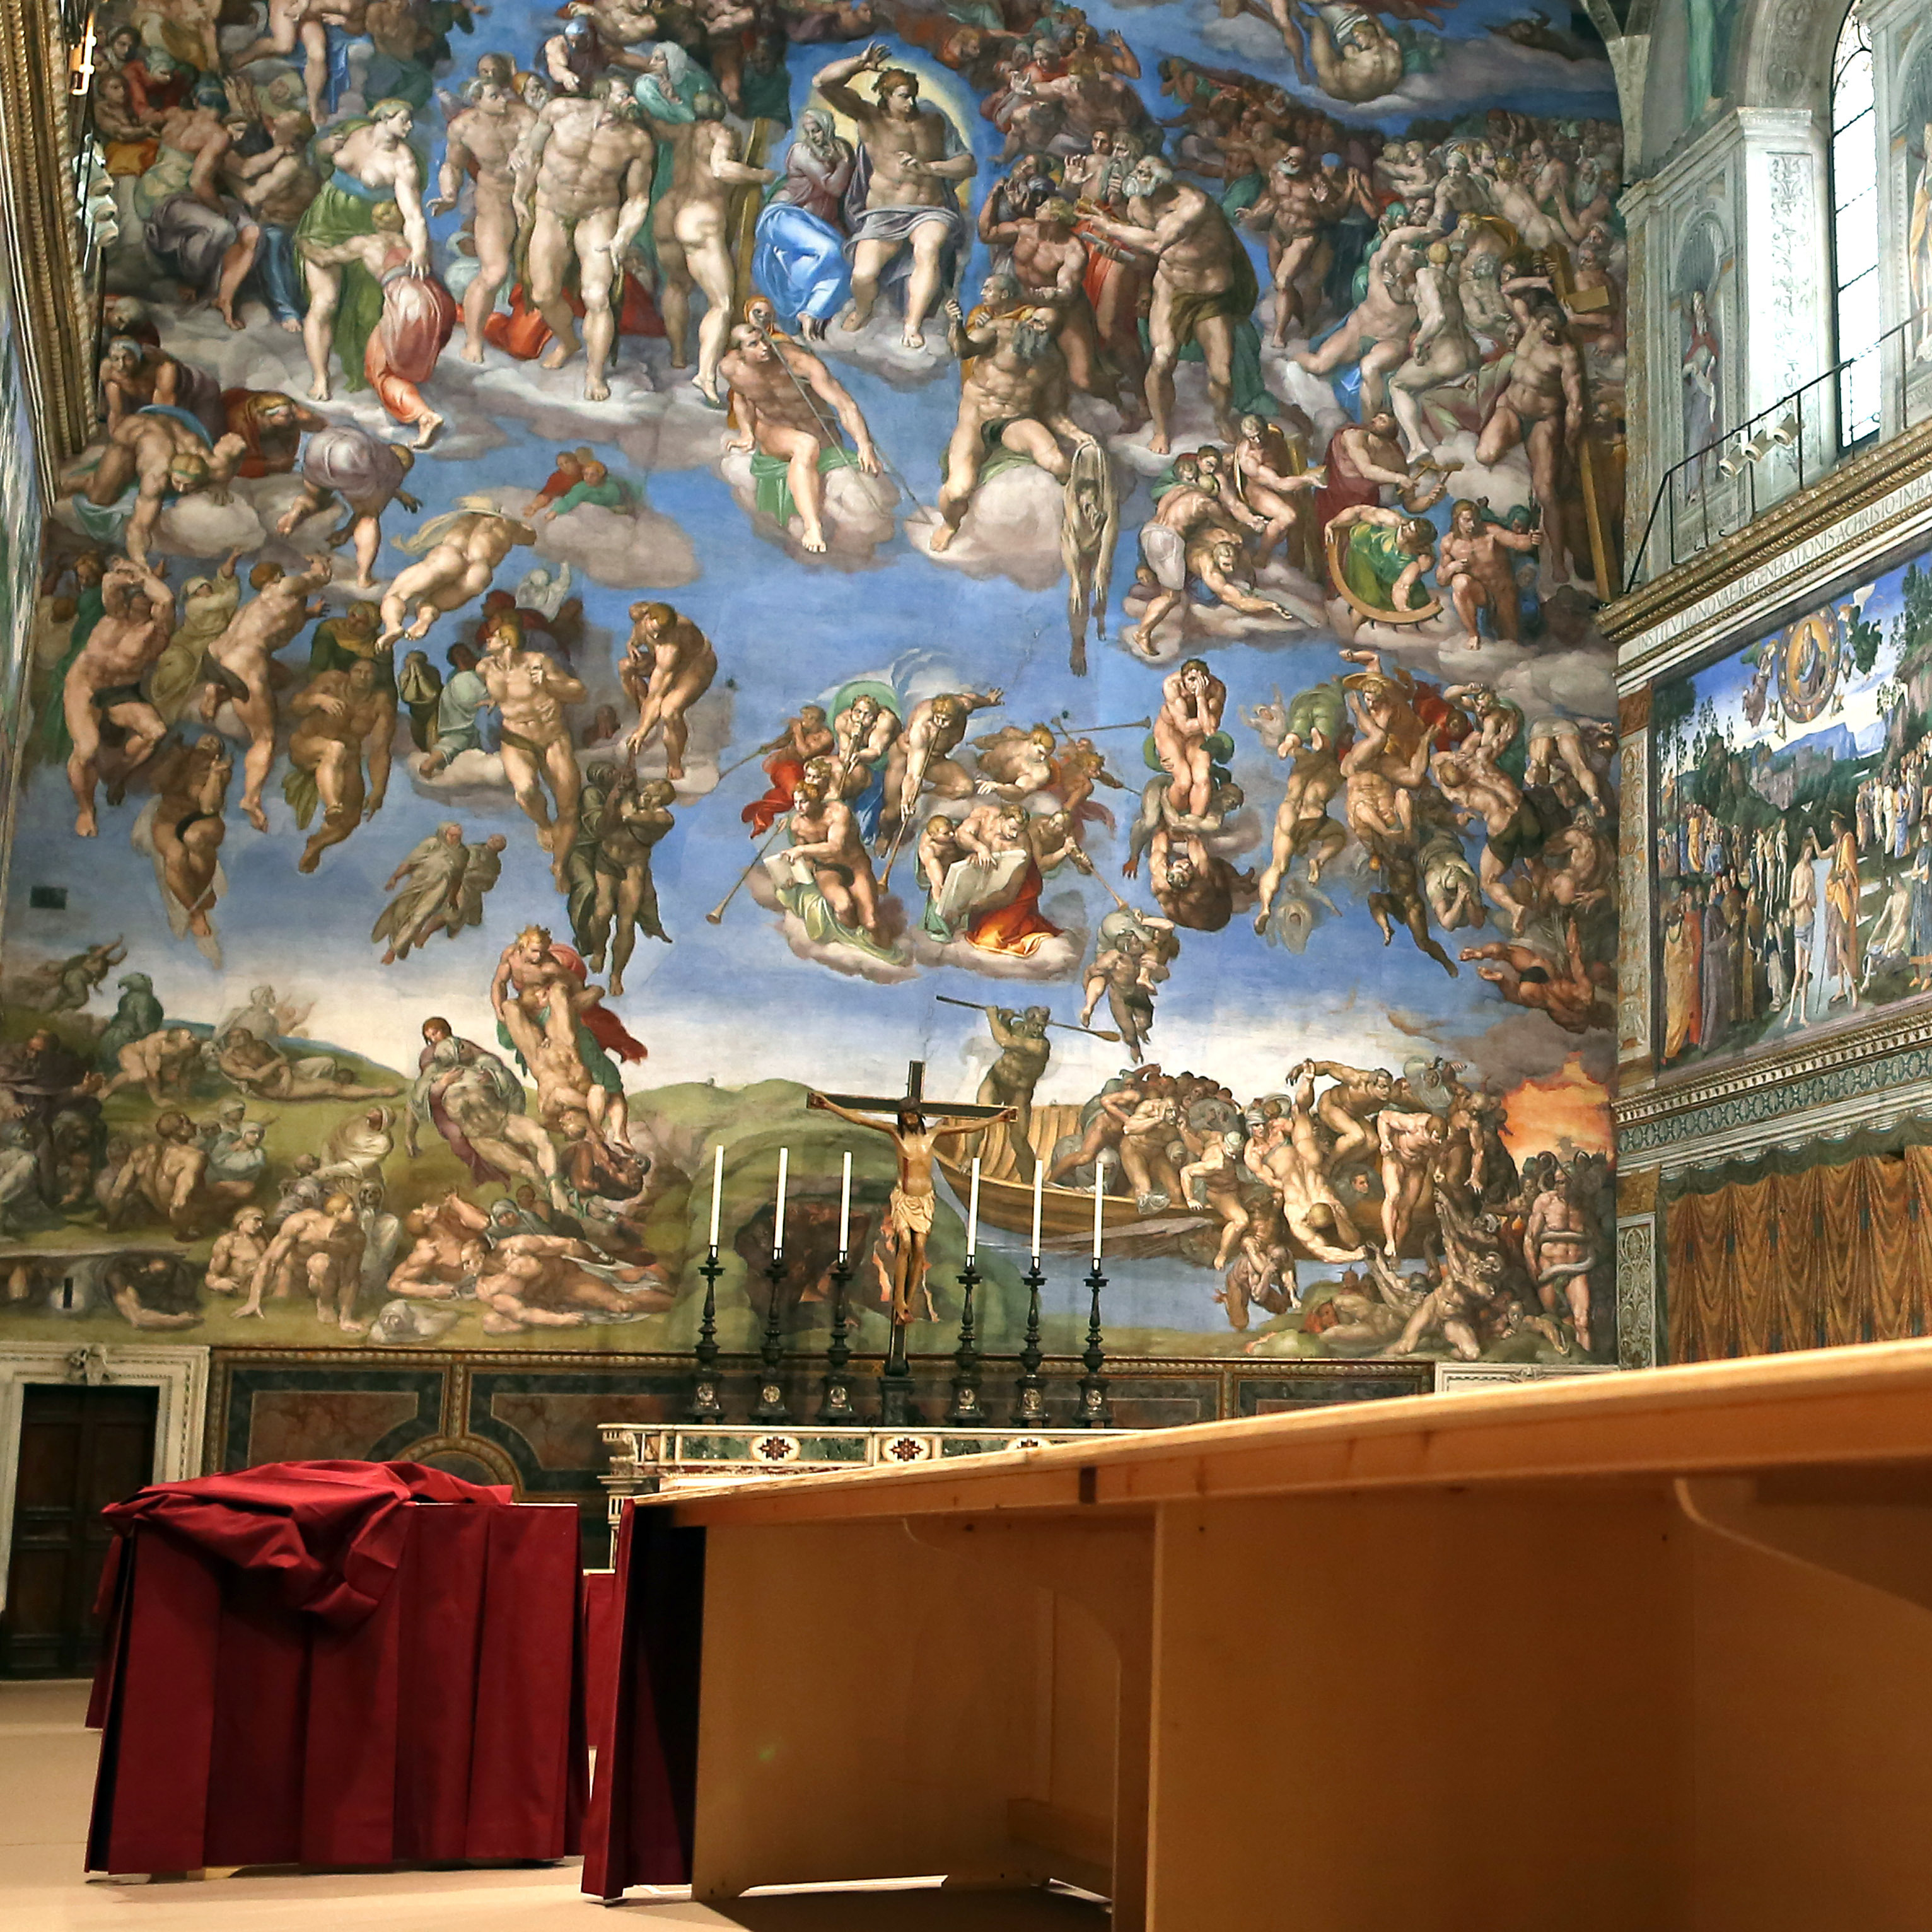 The Sistine Chapel is being prepared for Tuesday's papal conclave at the Vatican.